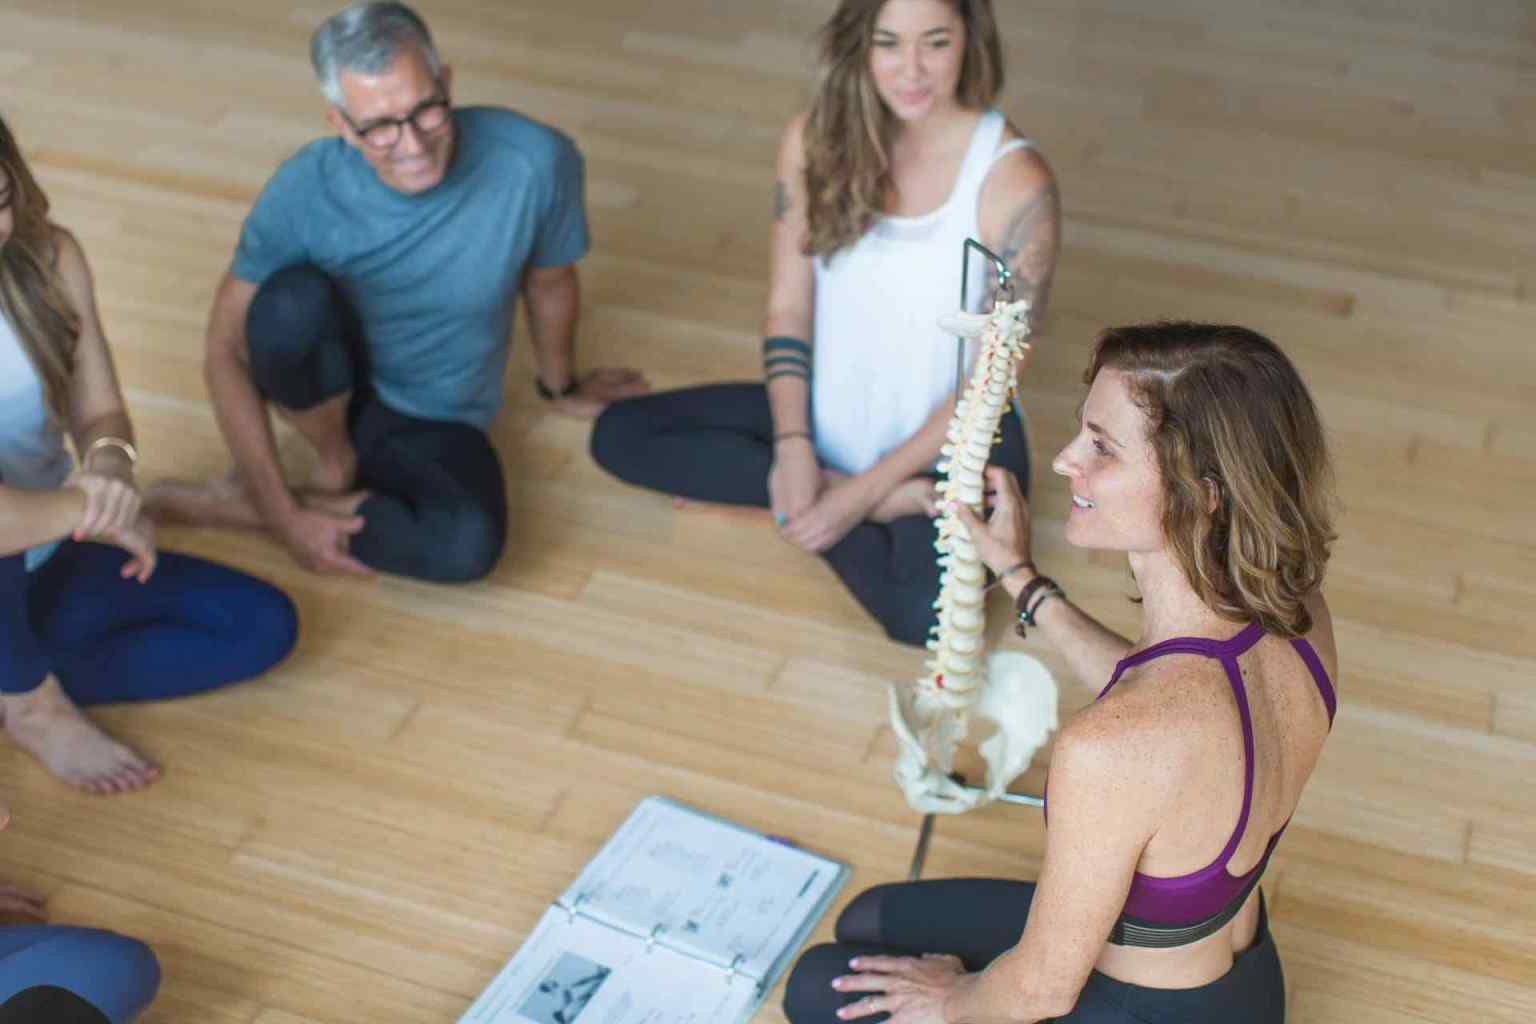 Lead teacher trainer discusses spinal alignment with students